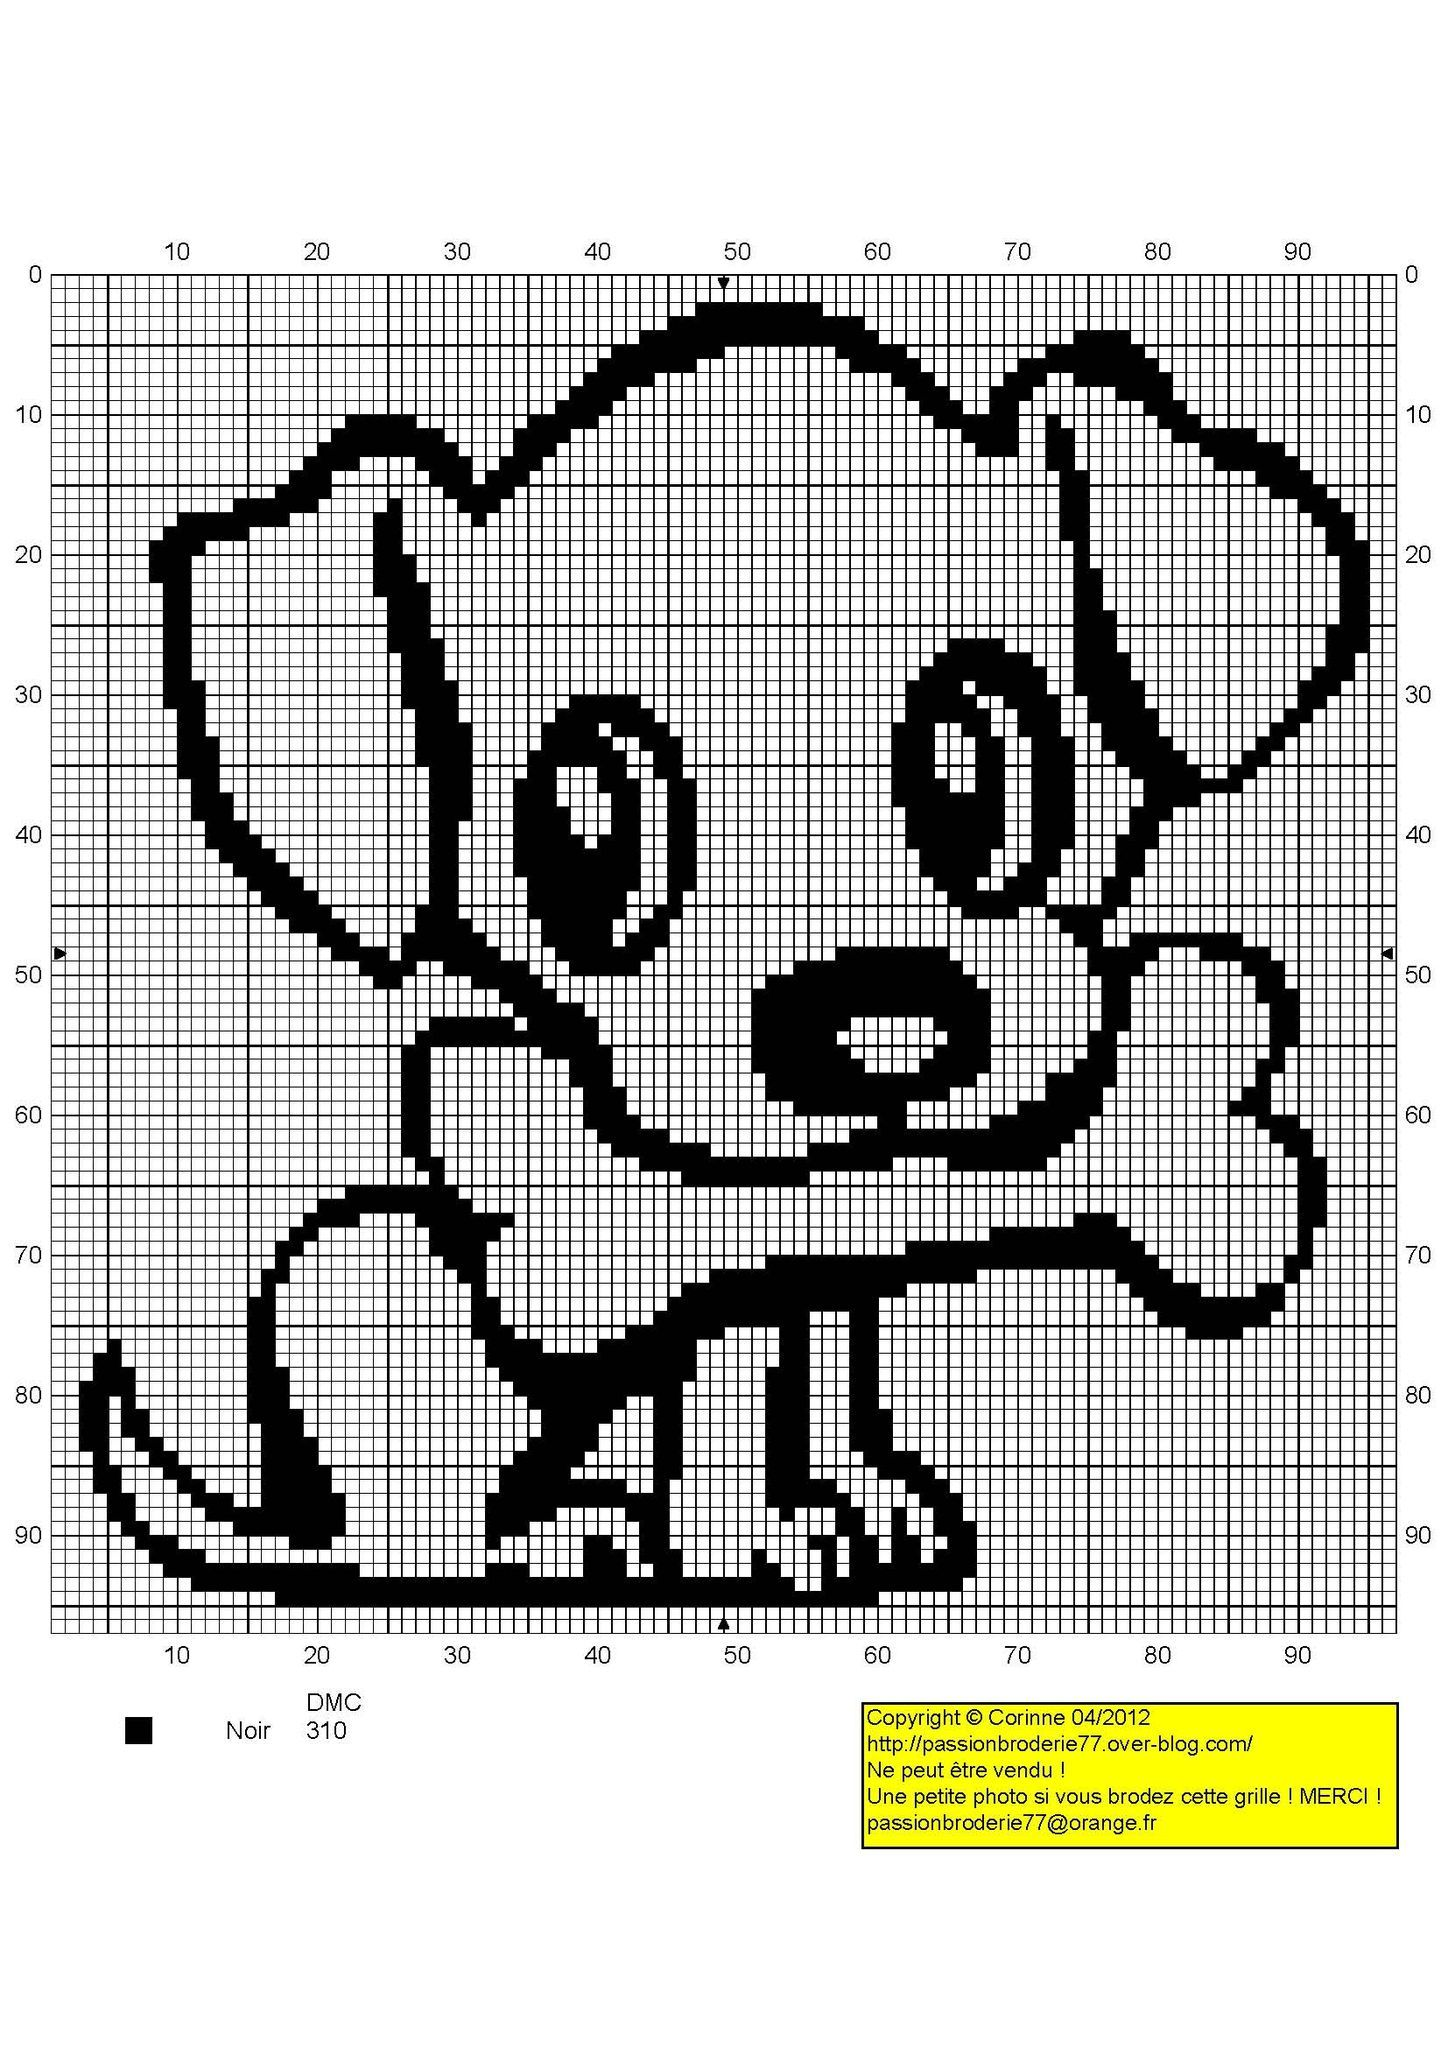 chien dog broderie cross stitch chiot et os point de croix blog http. Black Bedroom Furniture Sets. Home Design Ideas